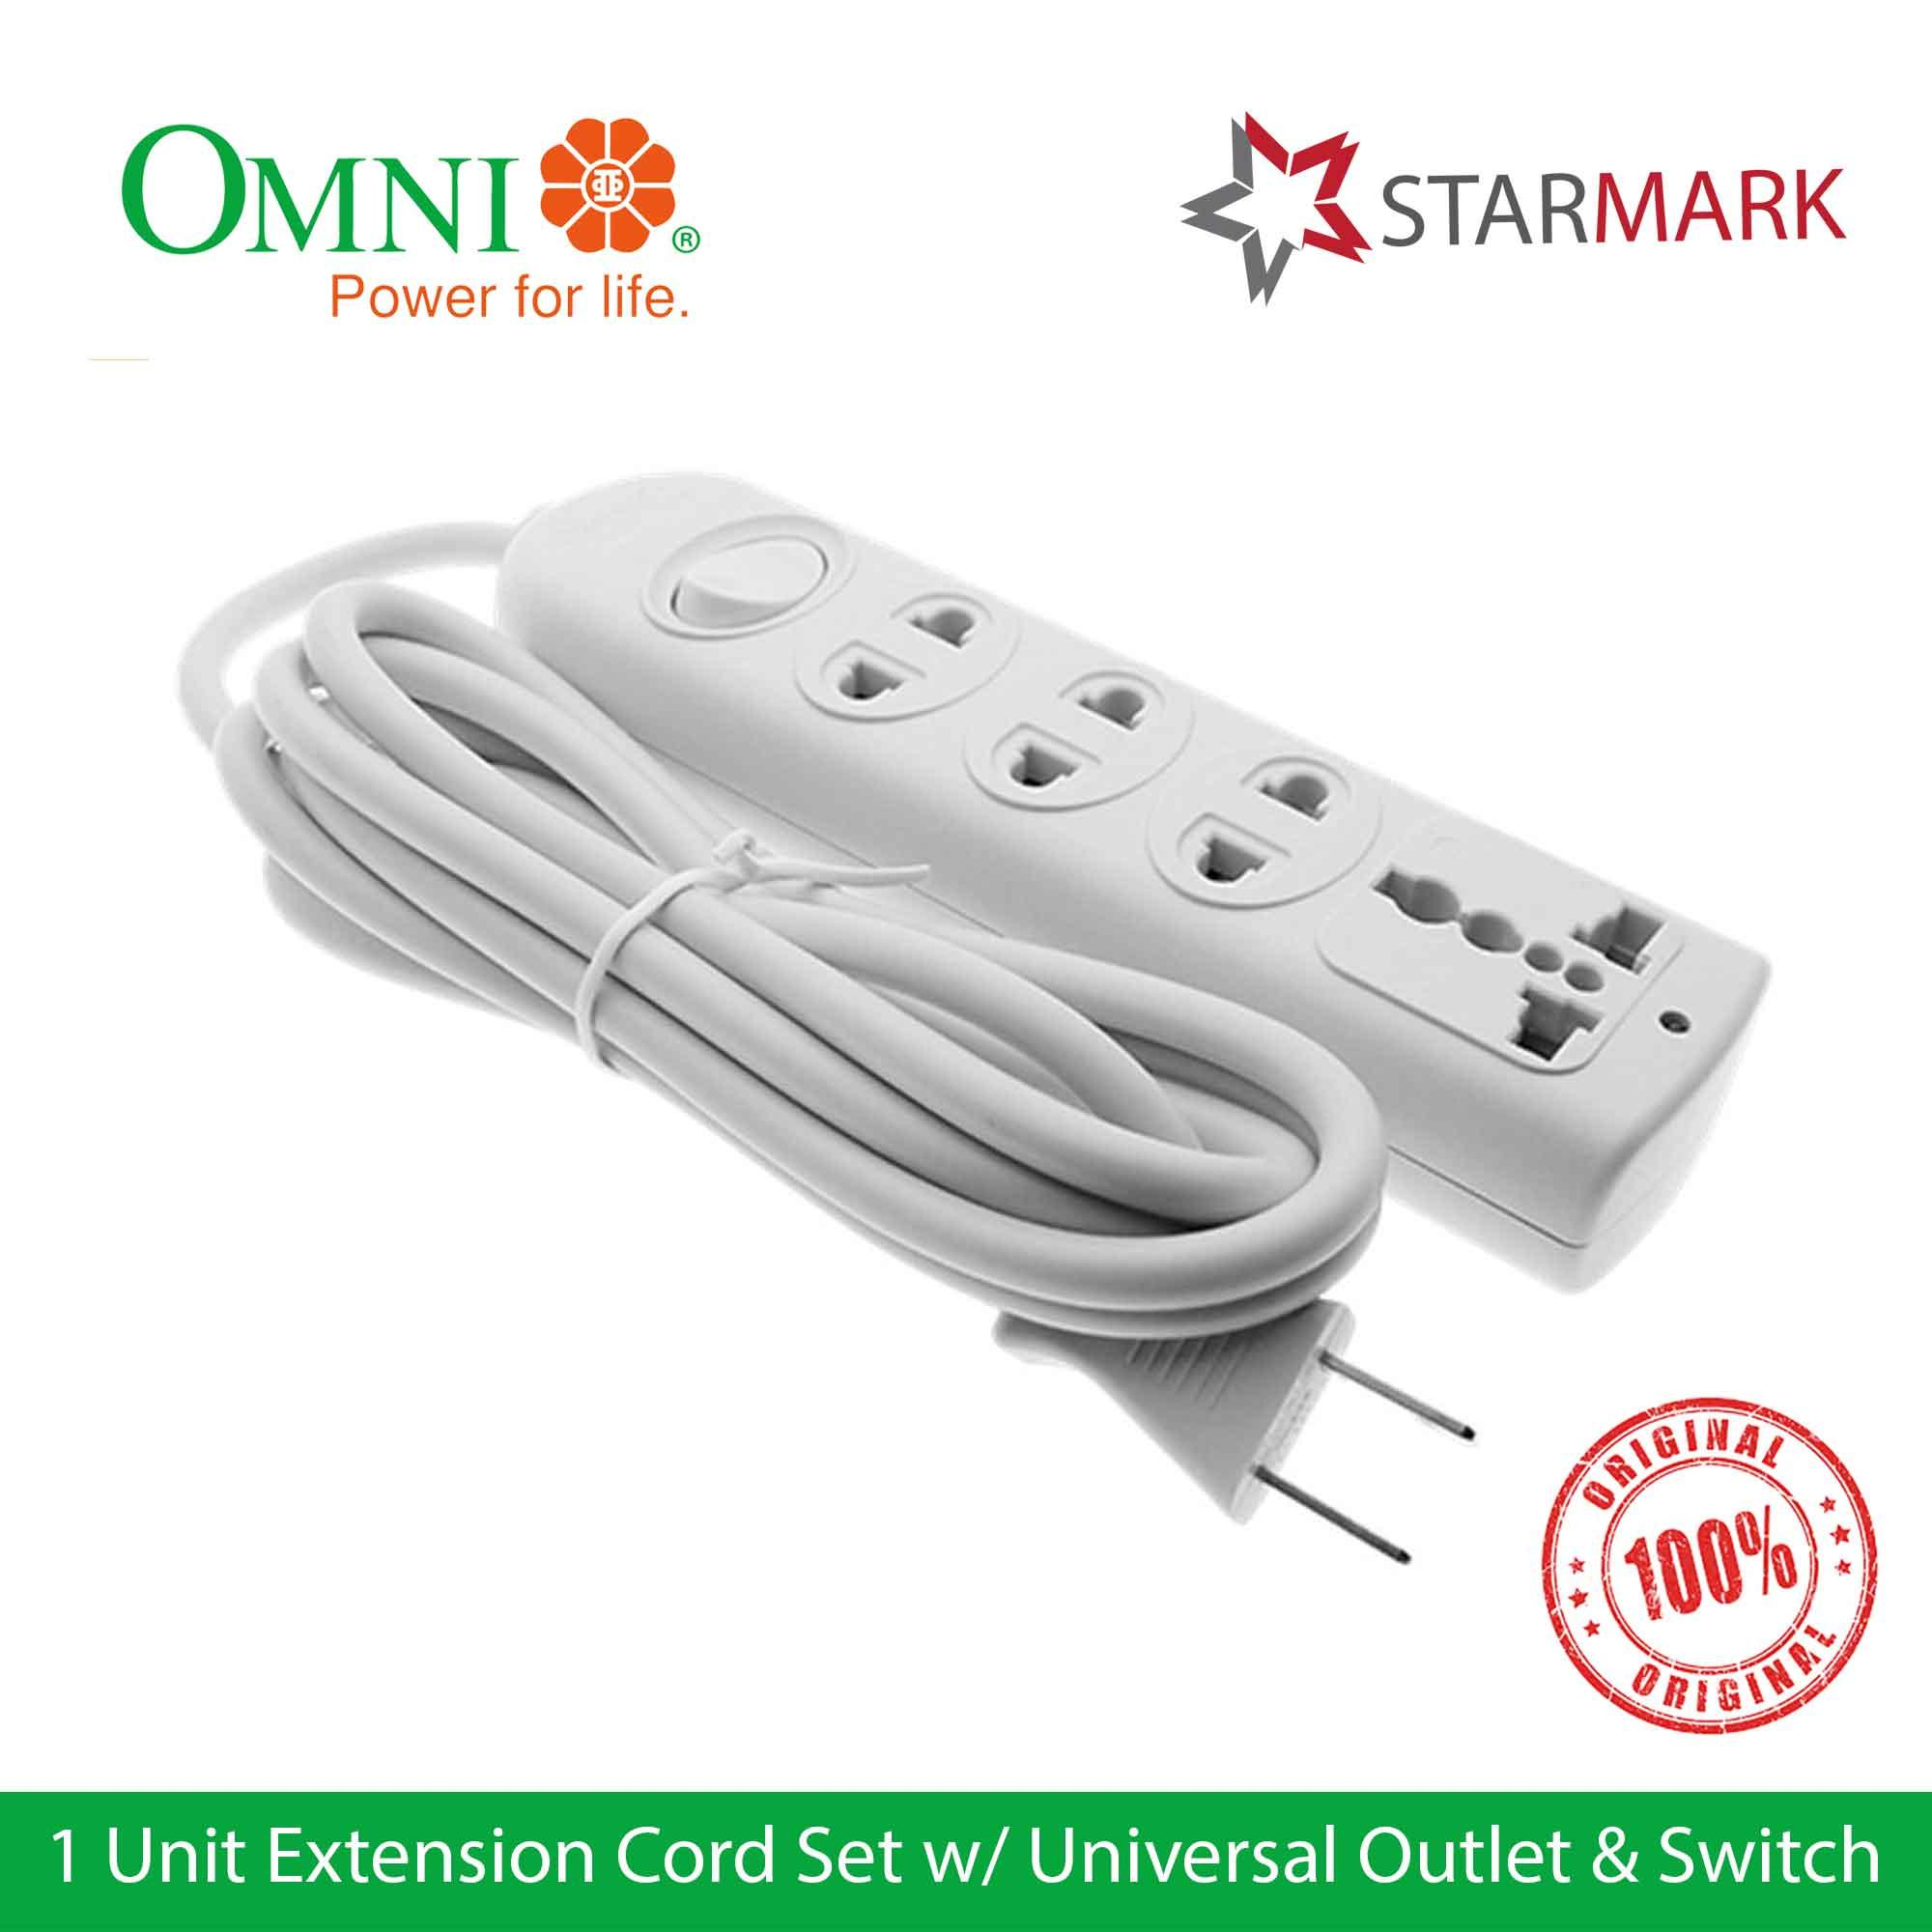 Omni Extension Cord Set With Universal Outlet And Switch Wer103 Wer-103 - Genuine And Original By Starmark Enterprises.